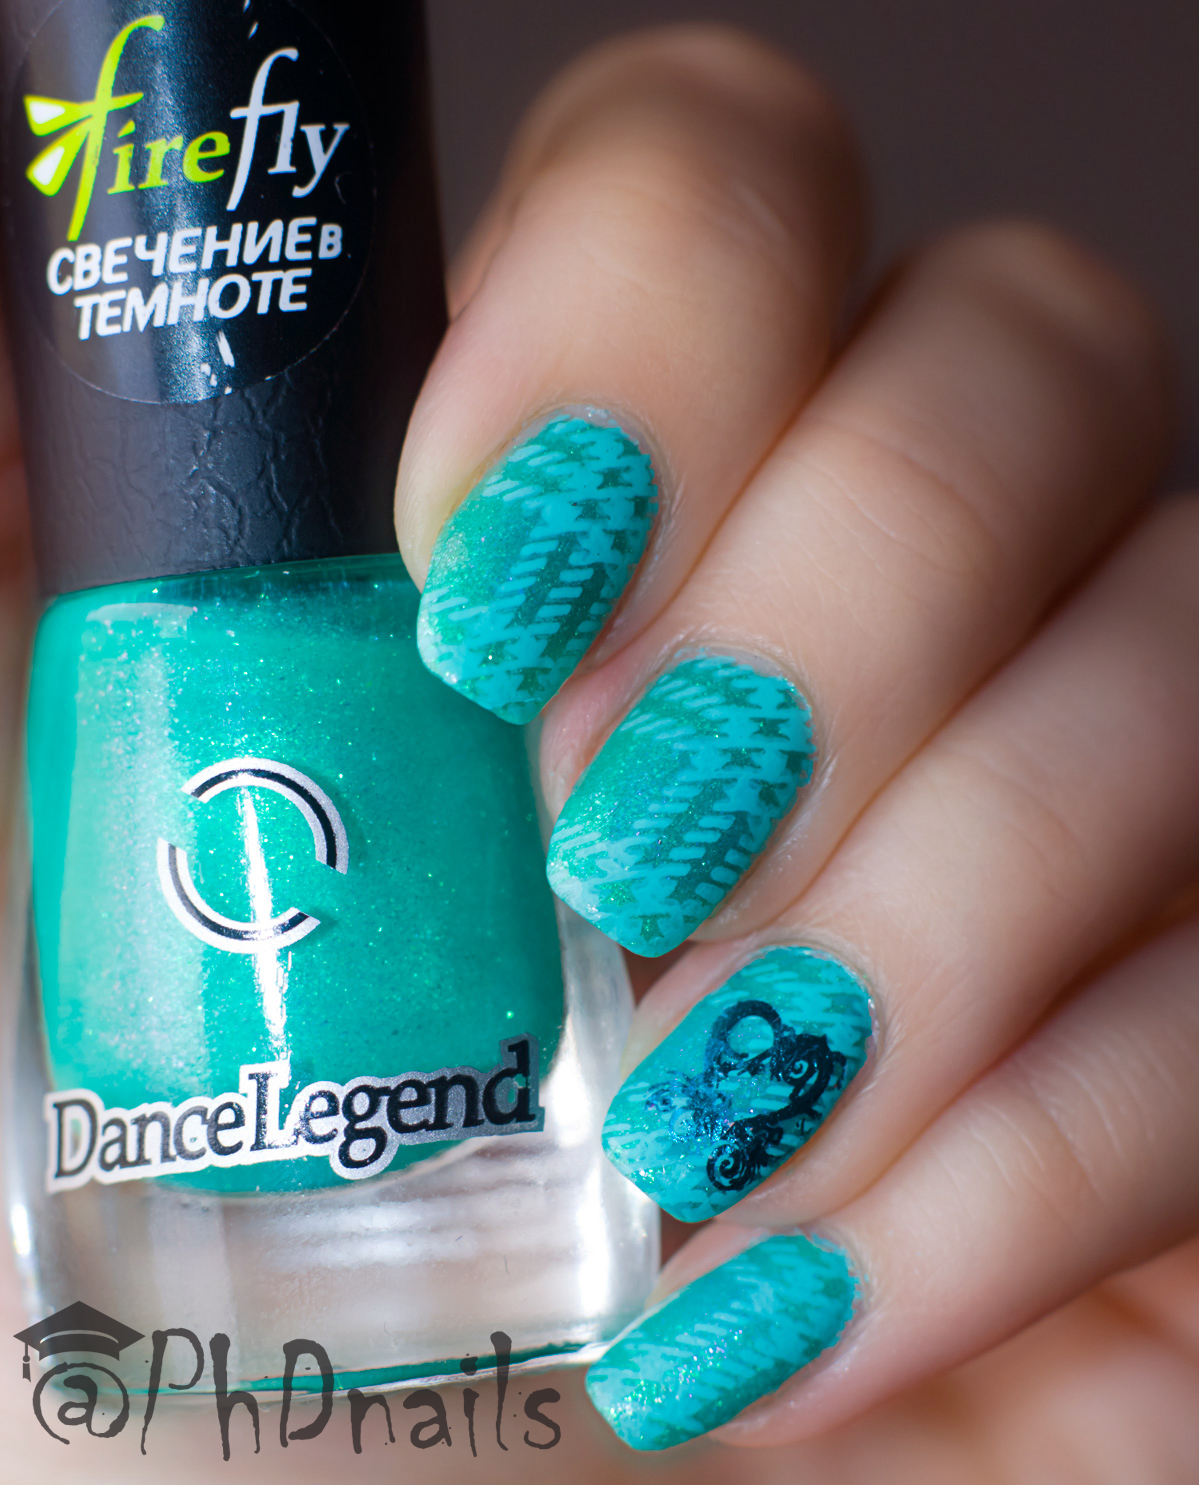 PhD nails: 40 great nail art ideas:Turquoise plaid nail design ...